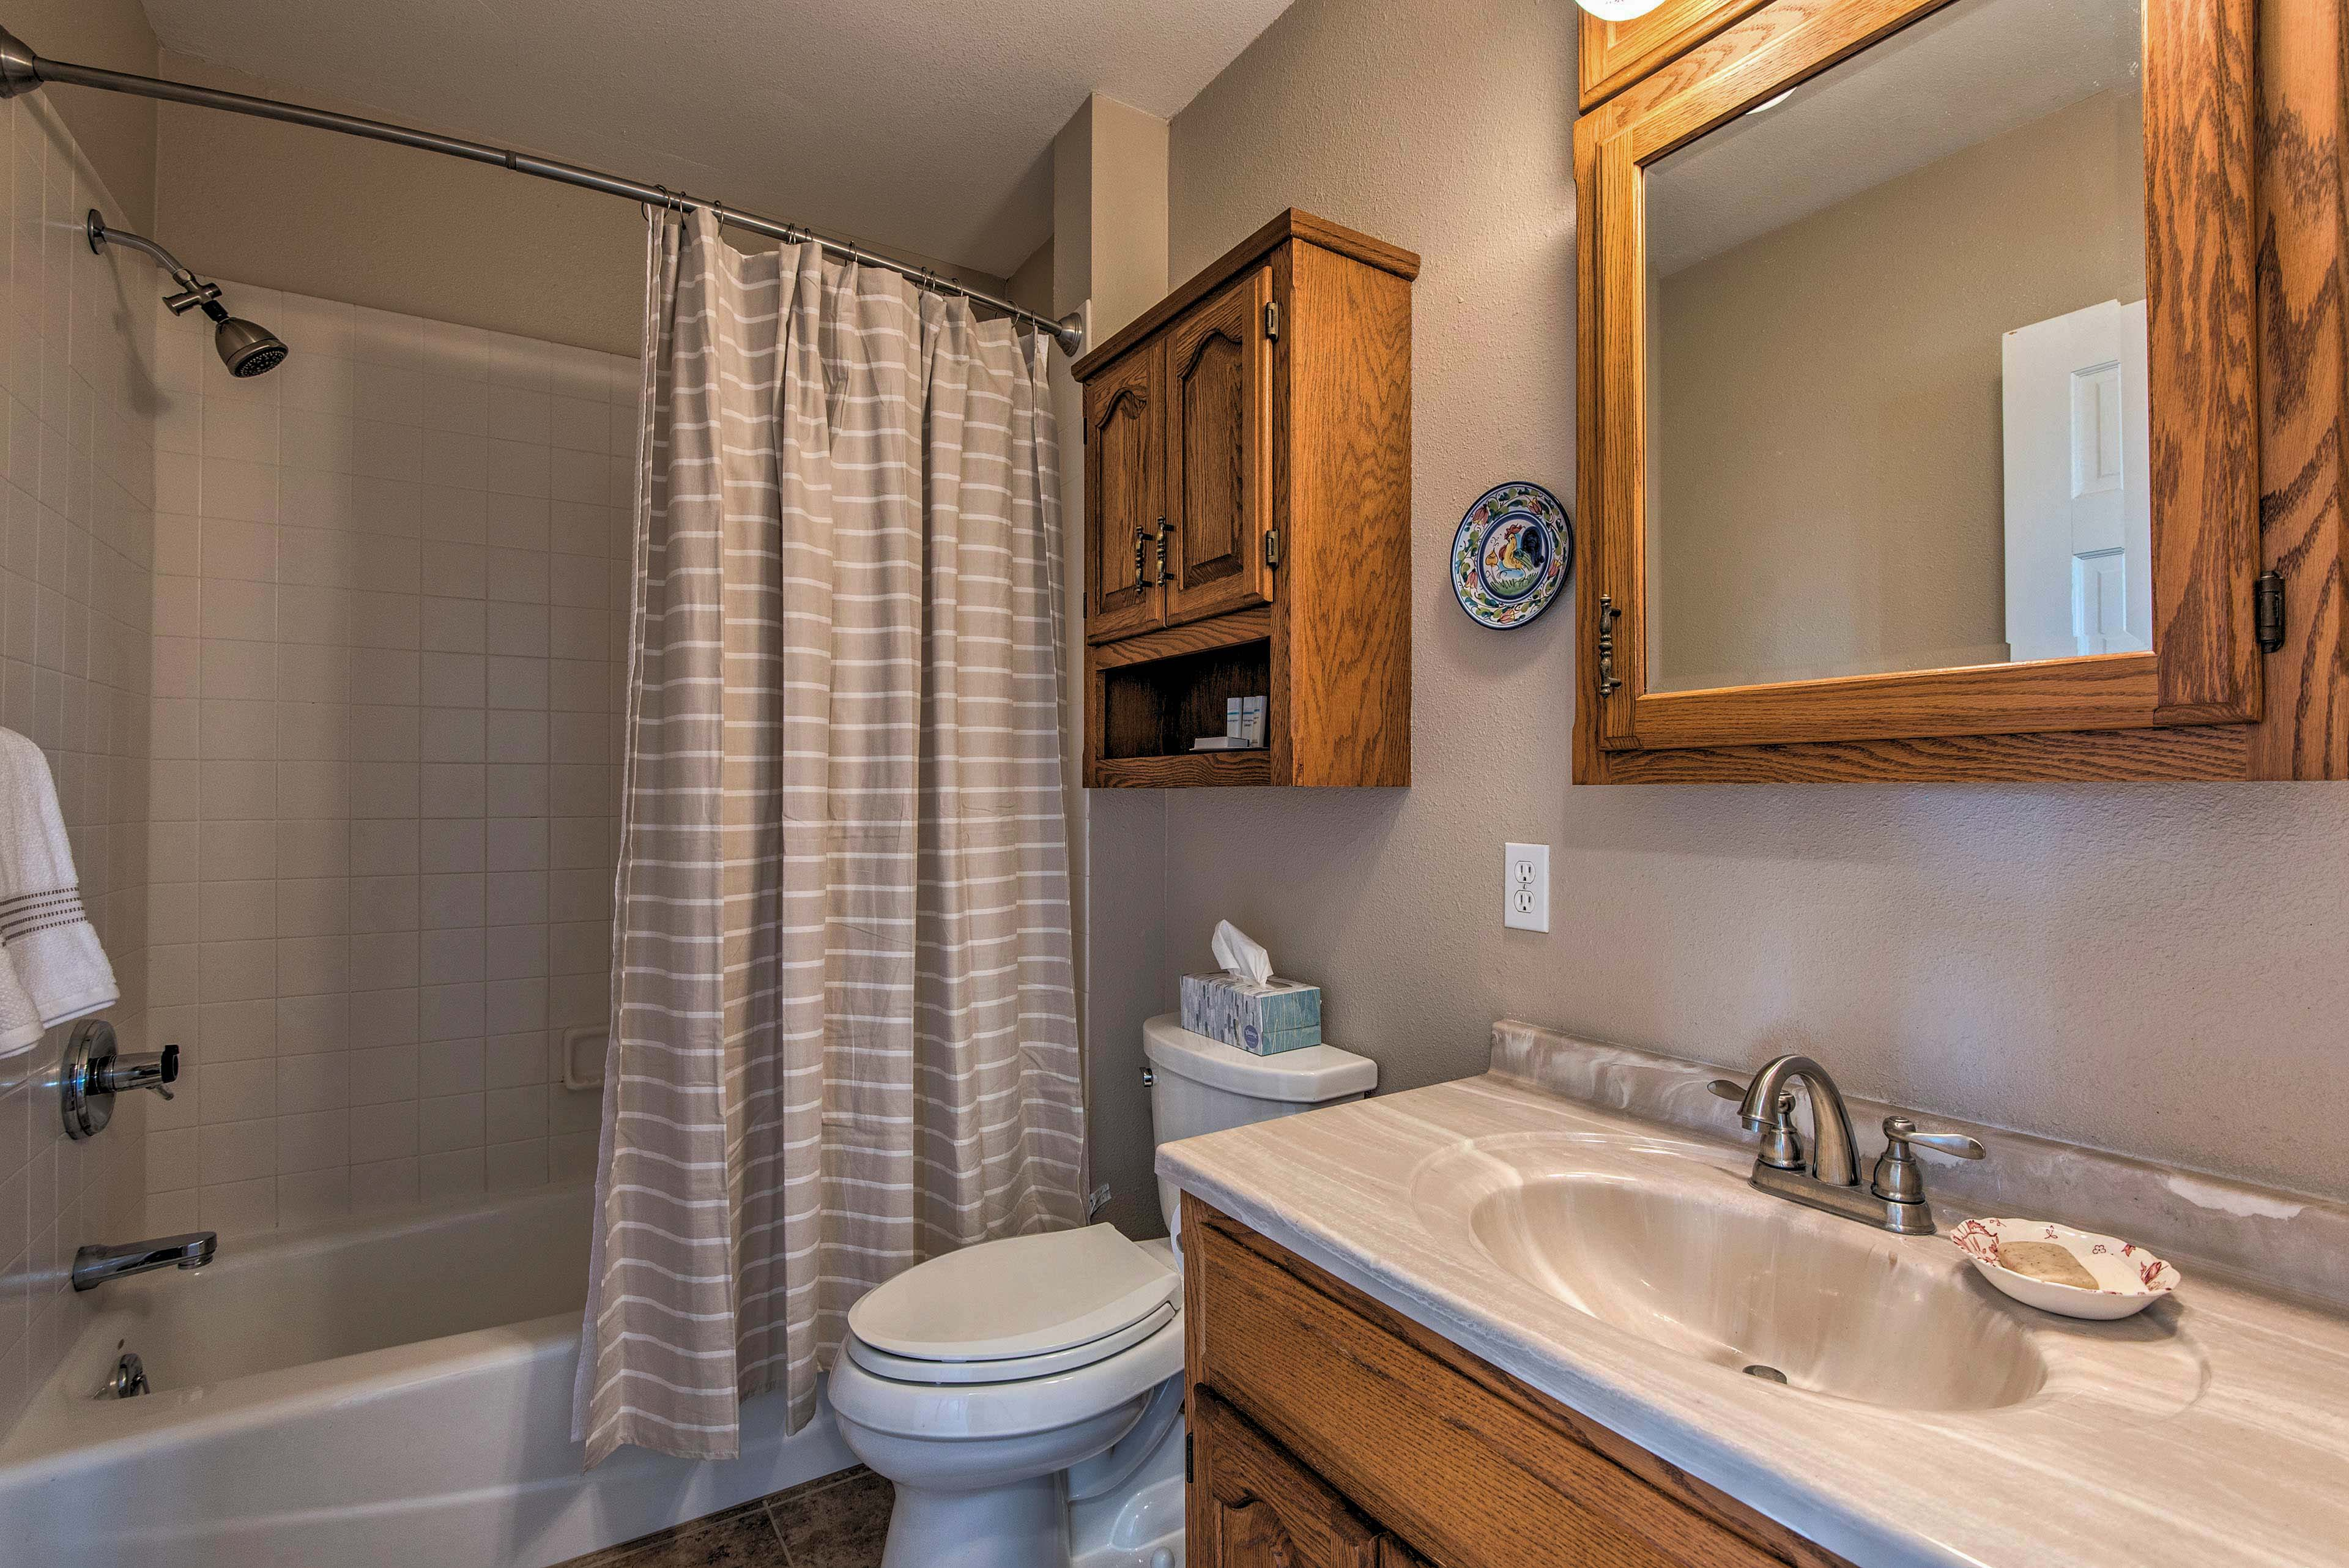 The second bathroom houses a shower/tub combo.